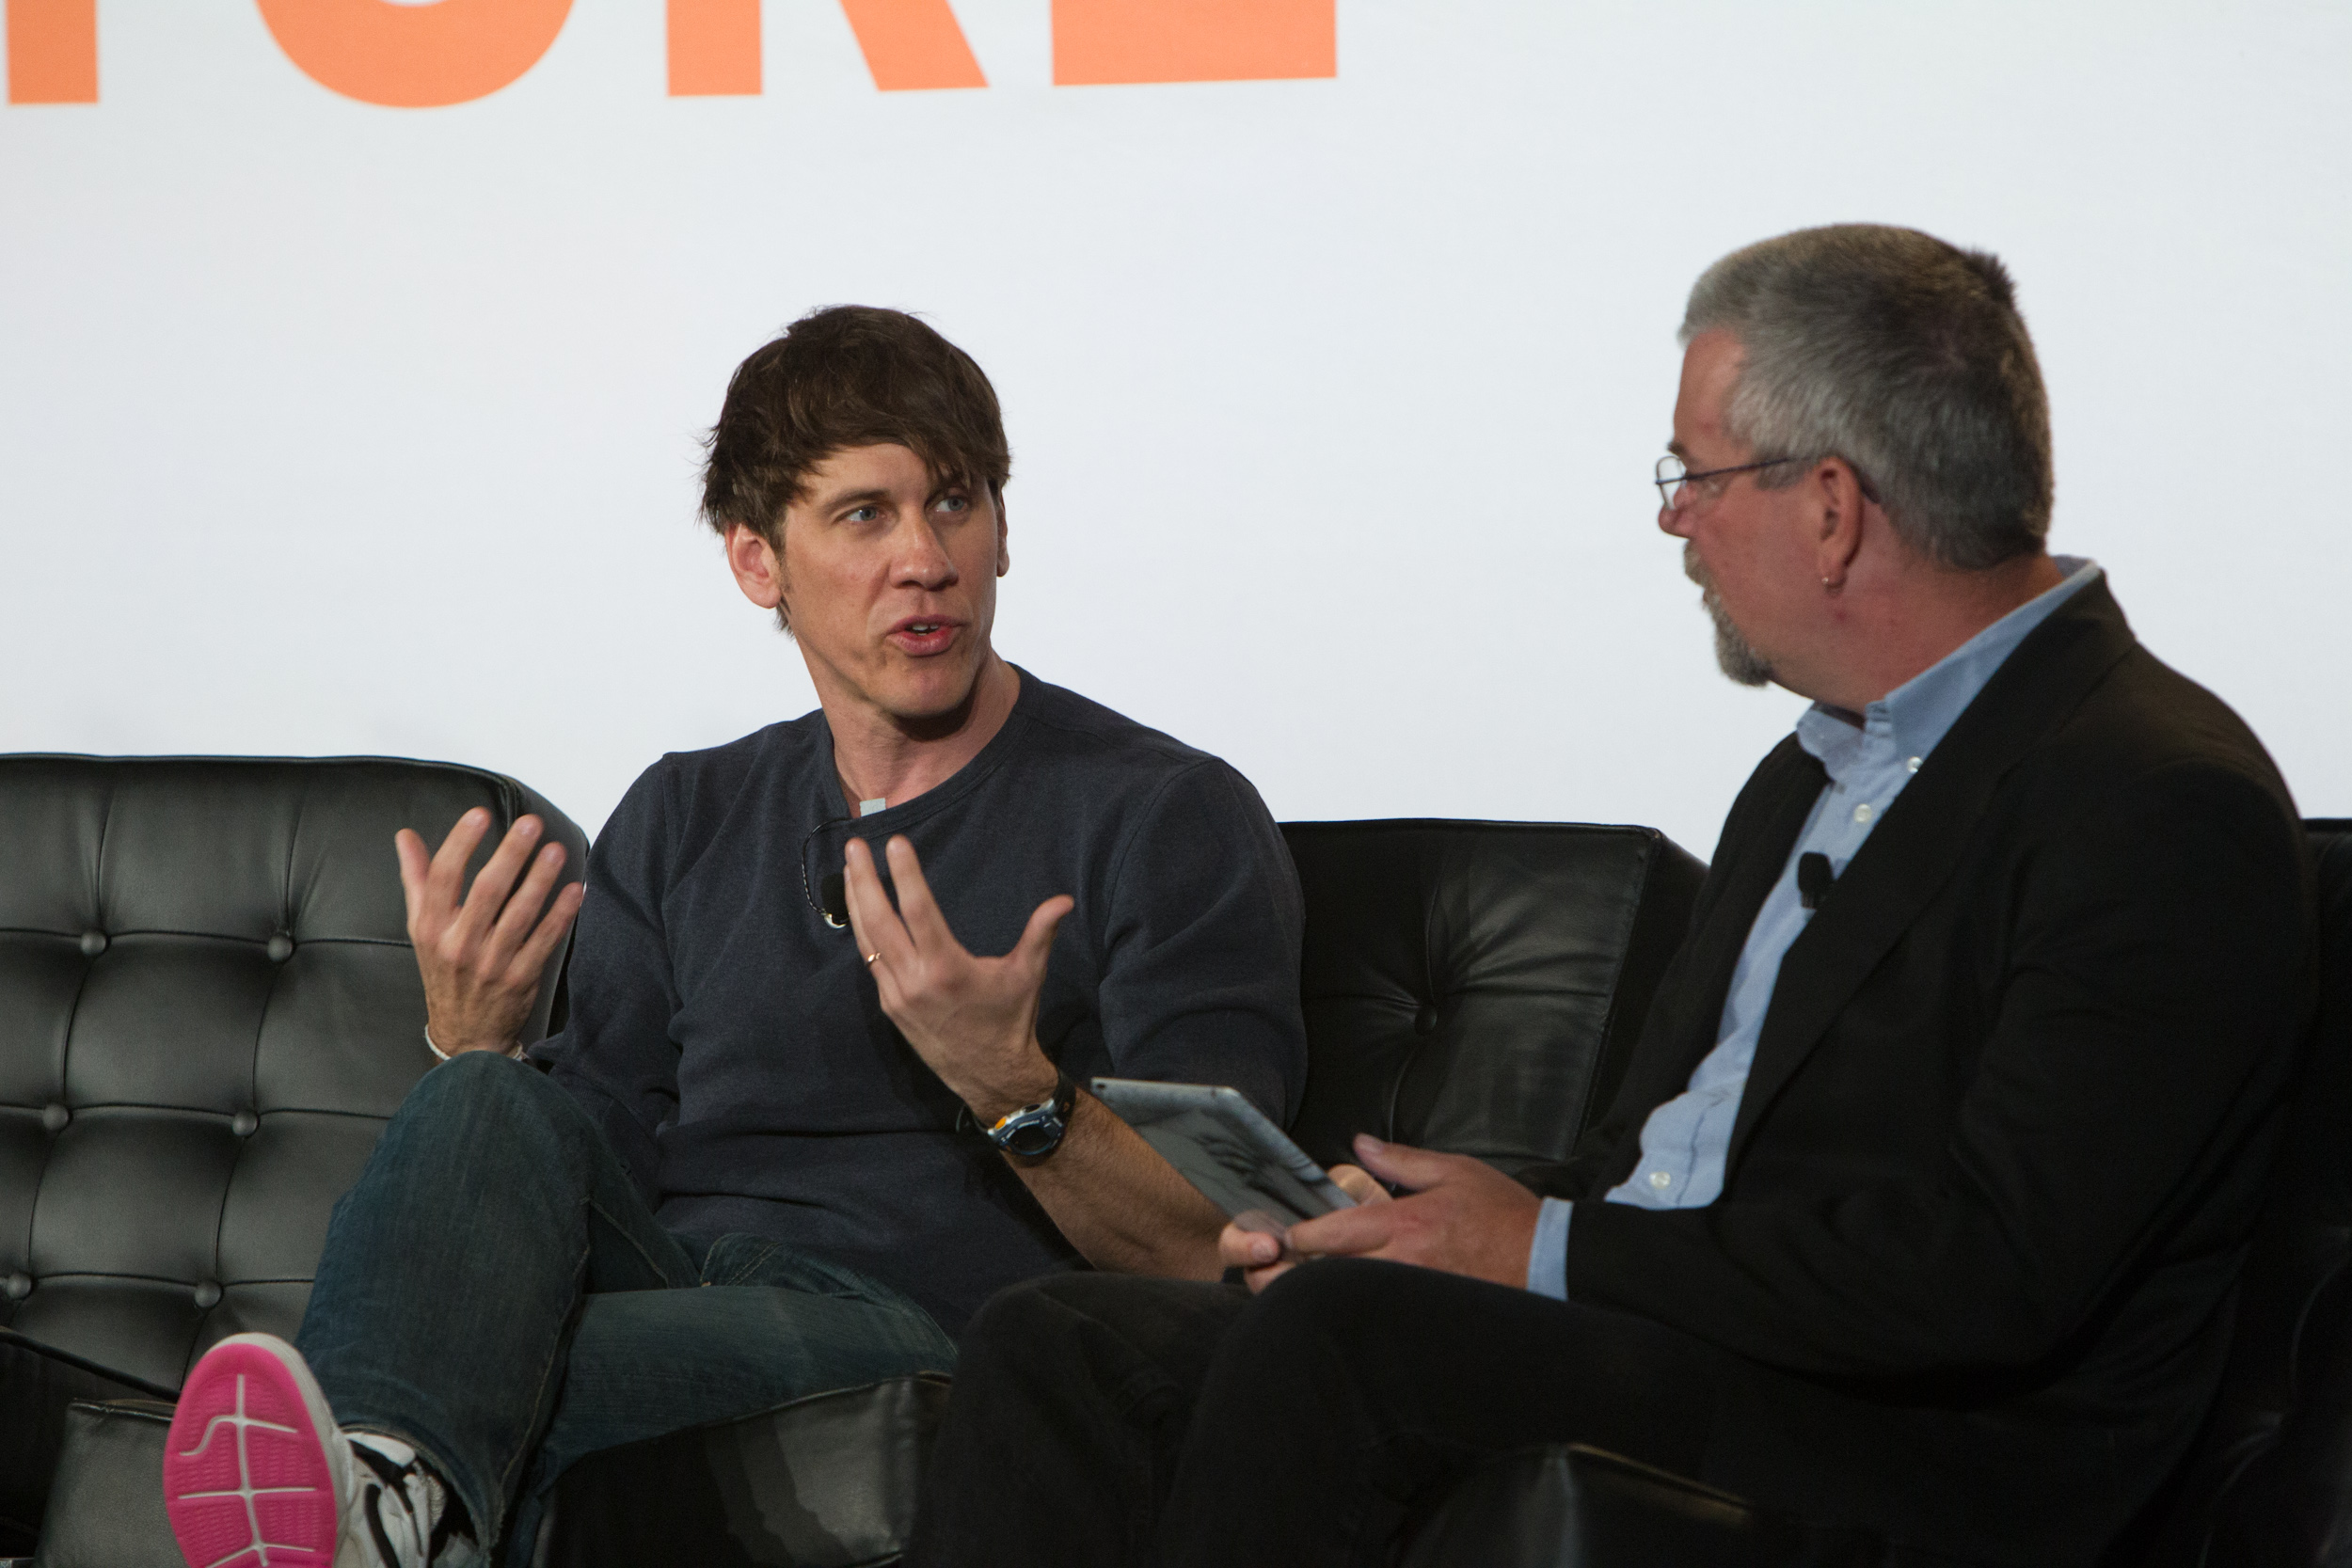 Dennis Crowley, CEO, Foursquare Structure Data 2014